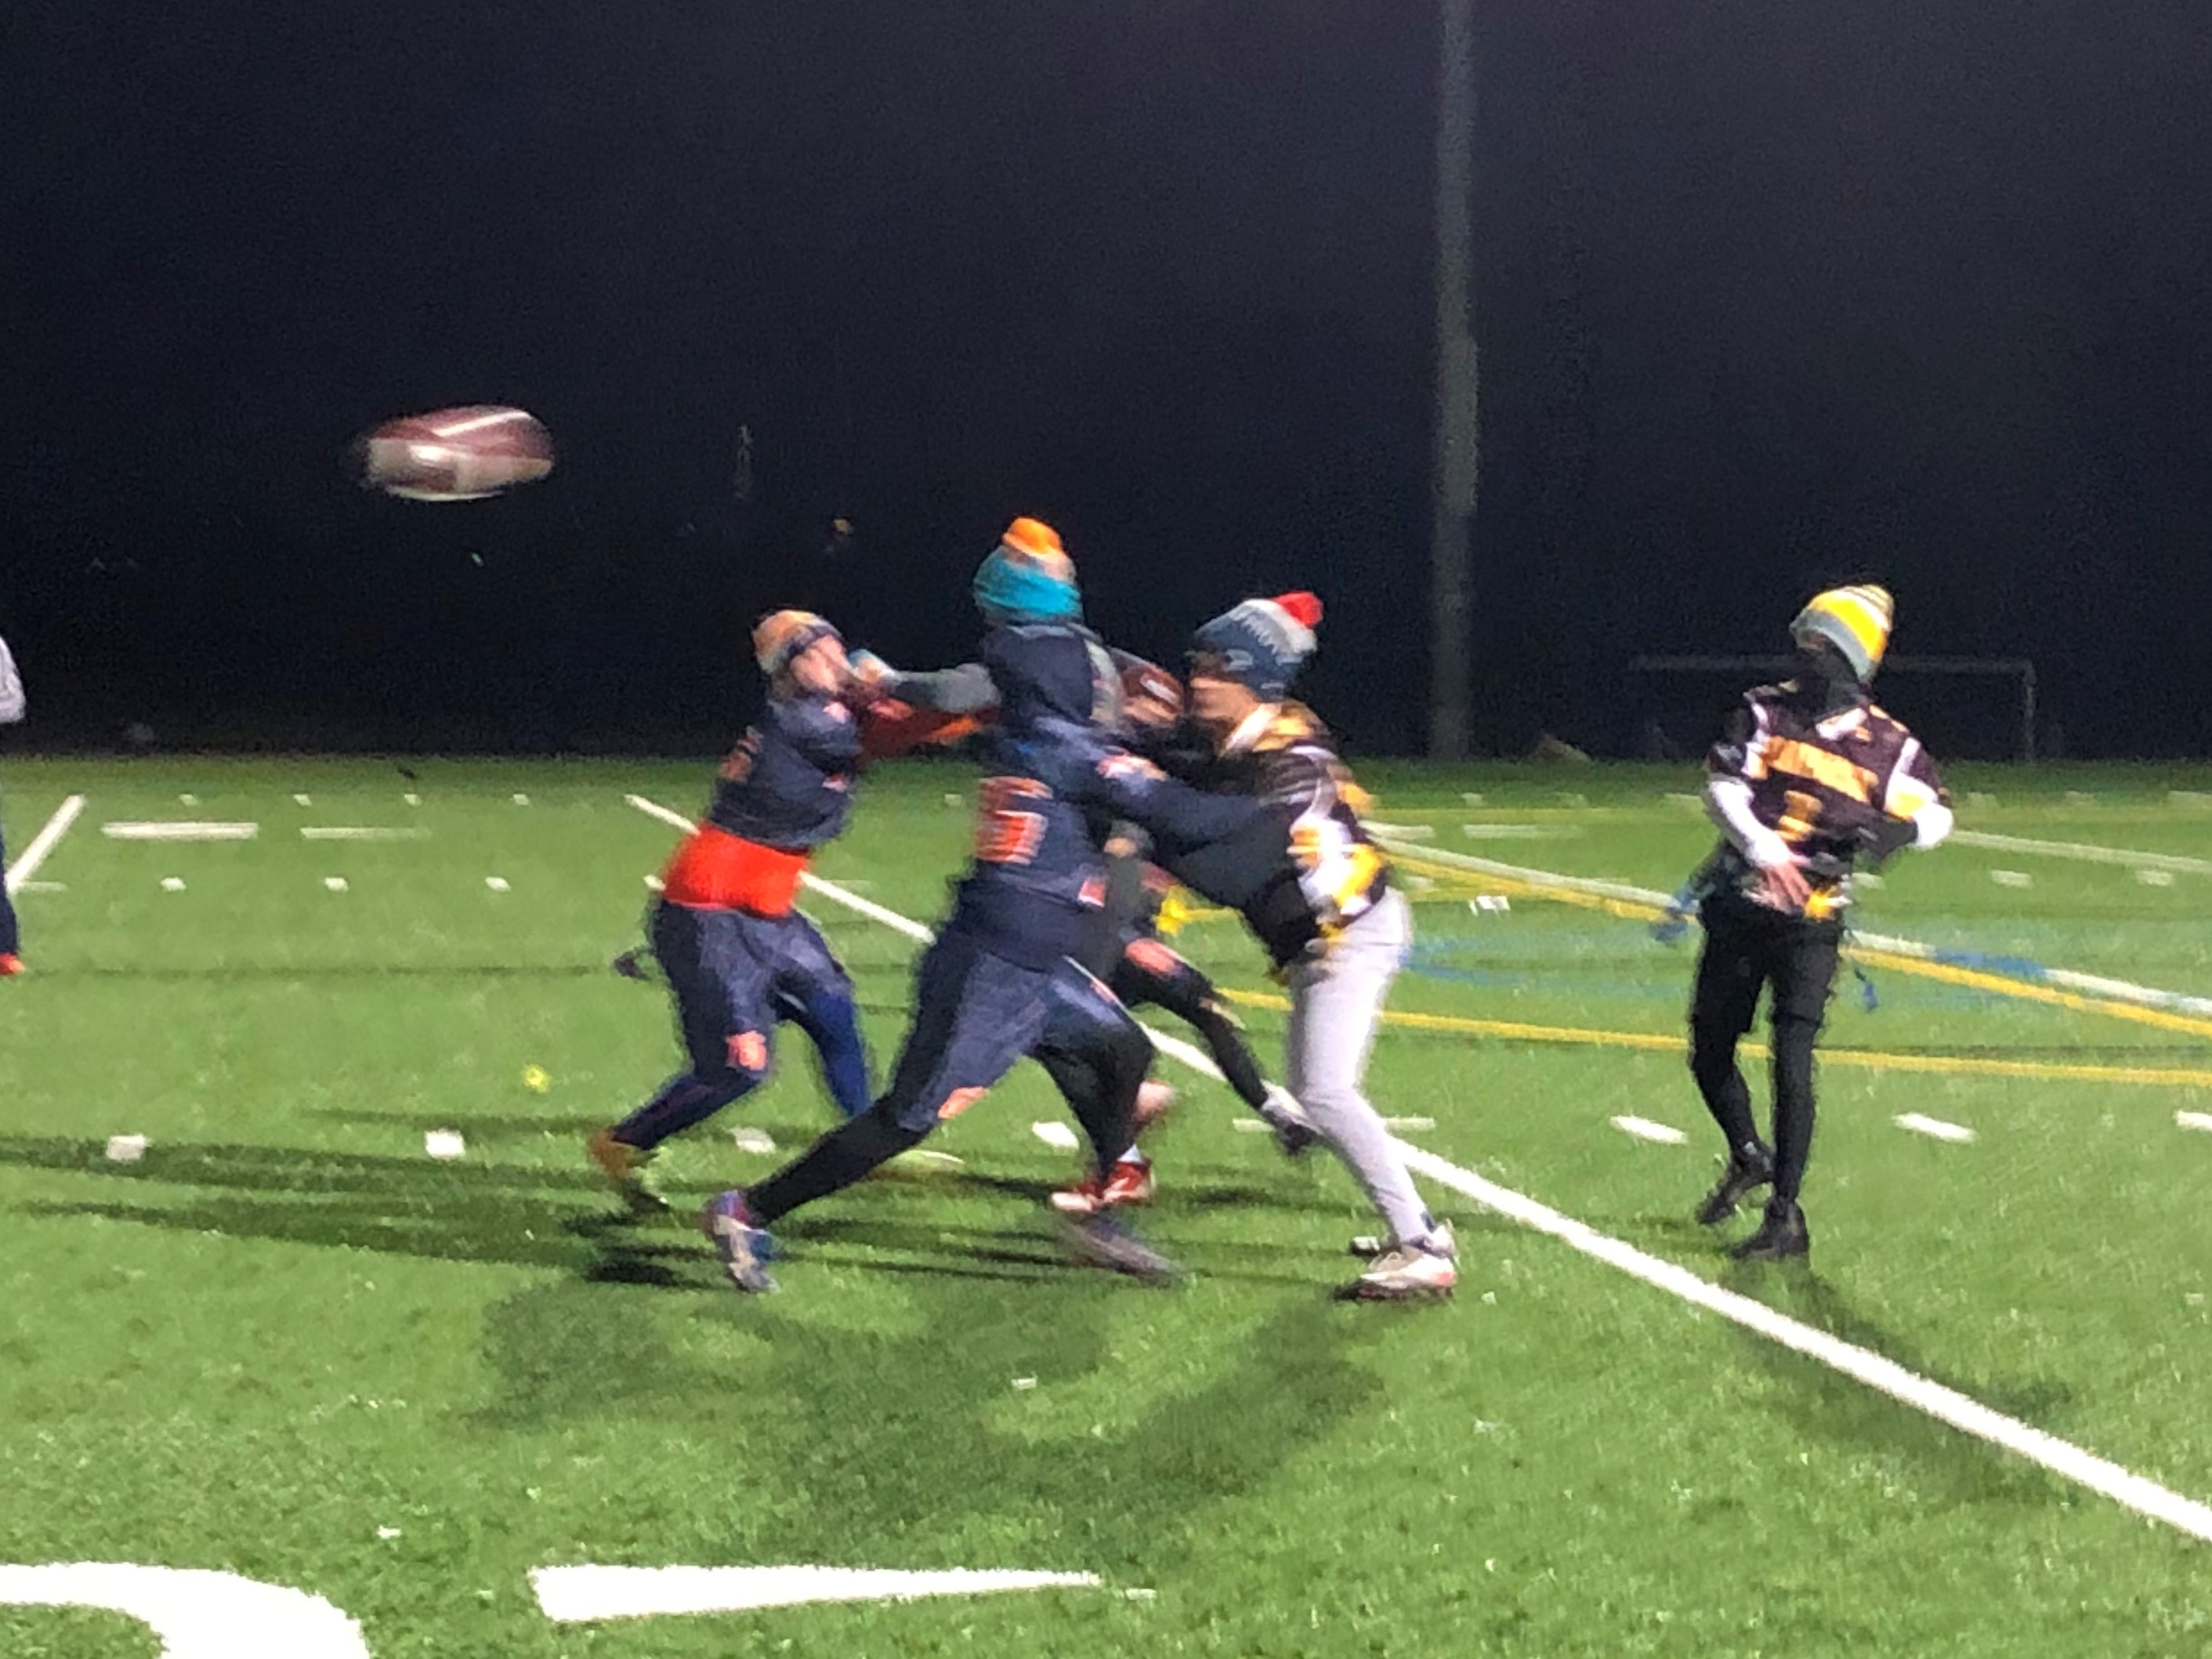 Season Ends in Frigid First Round of the Playoffs